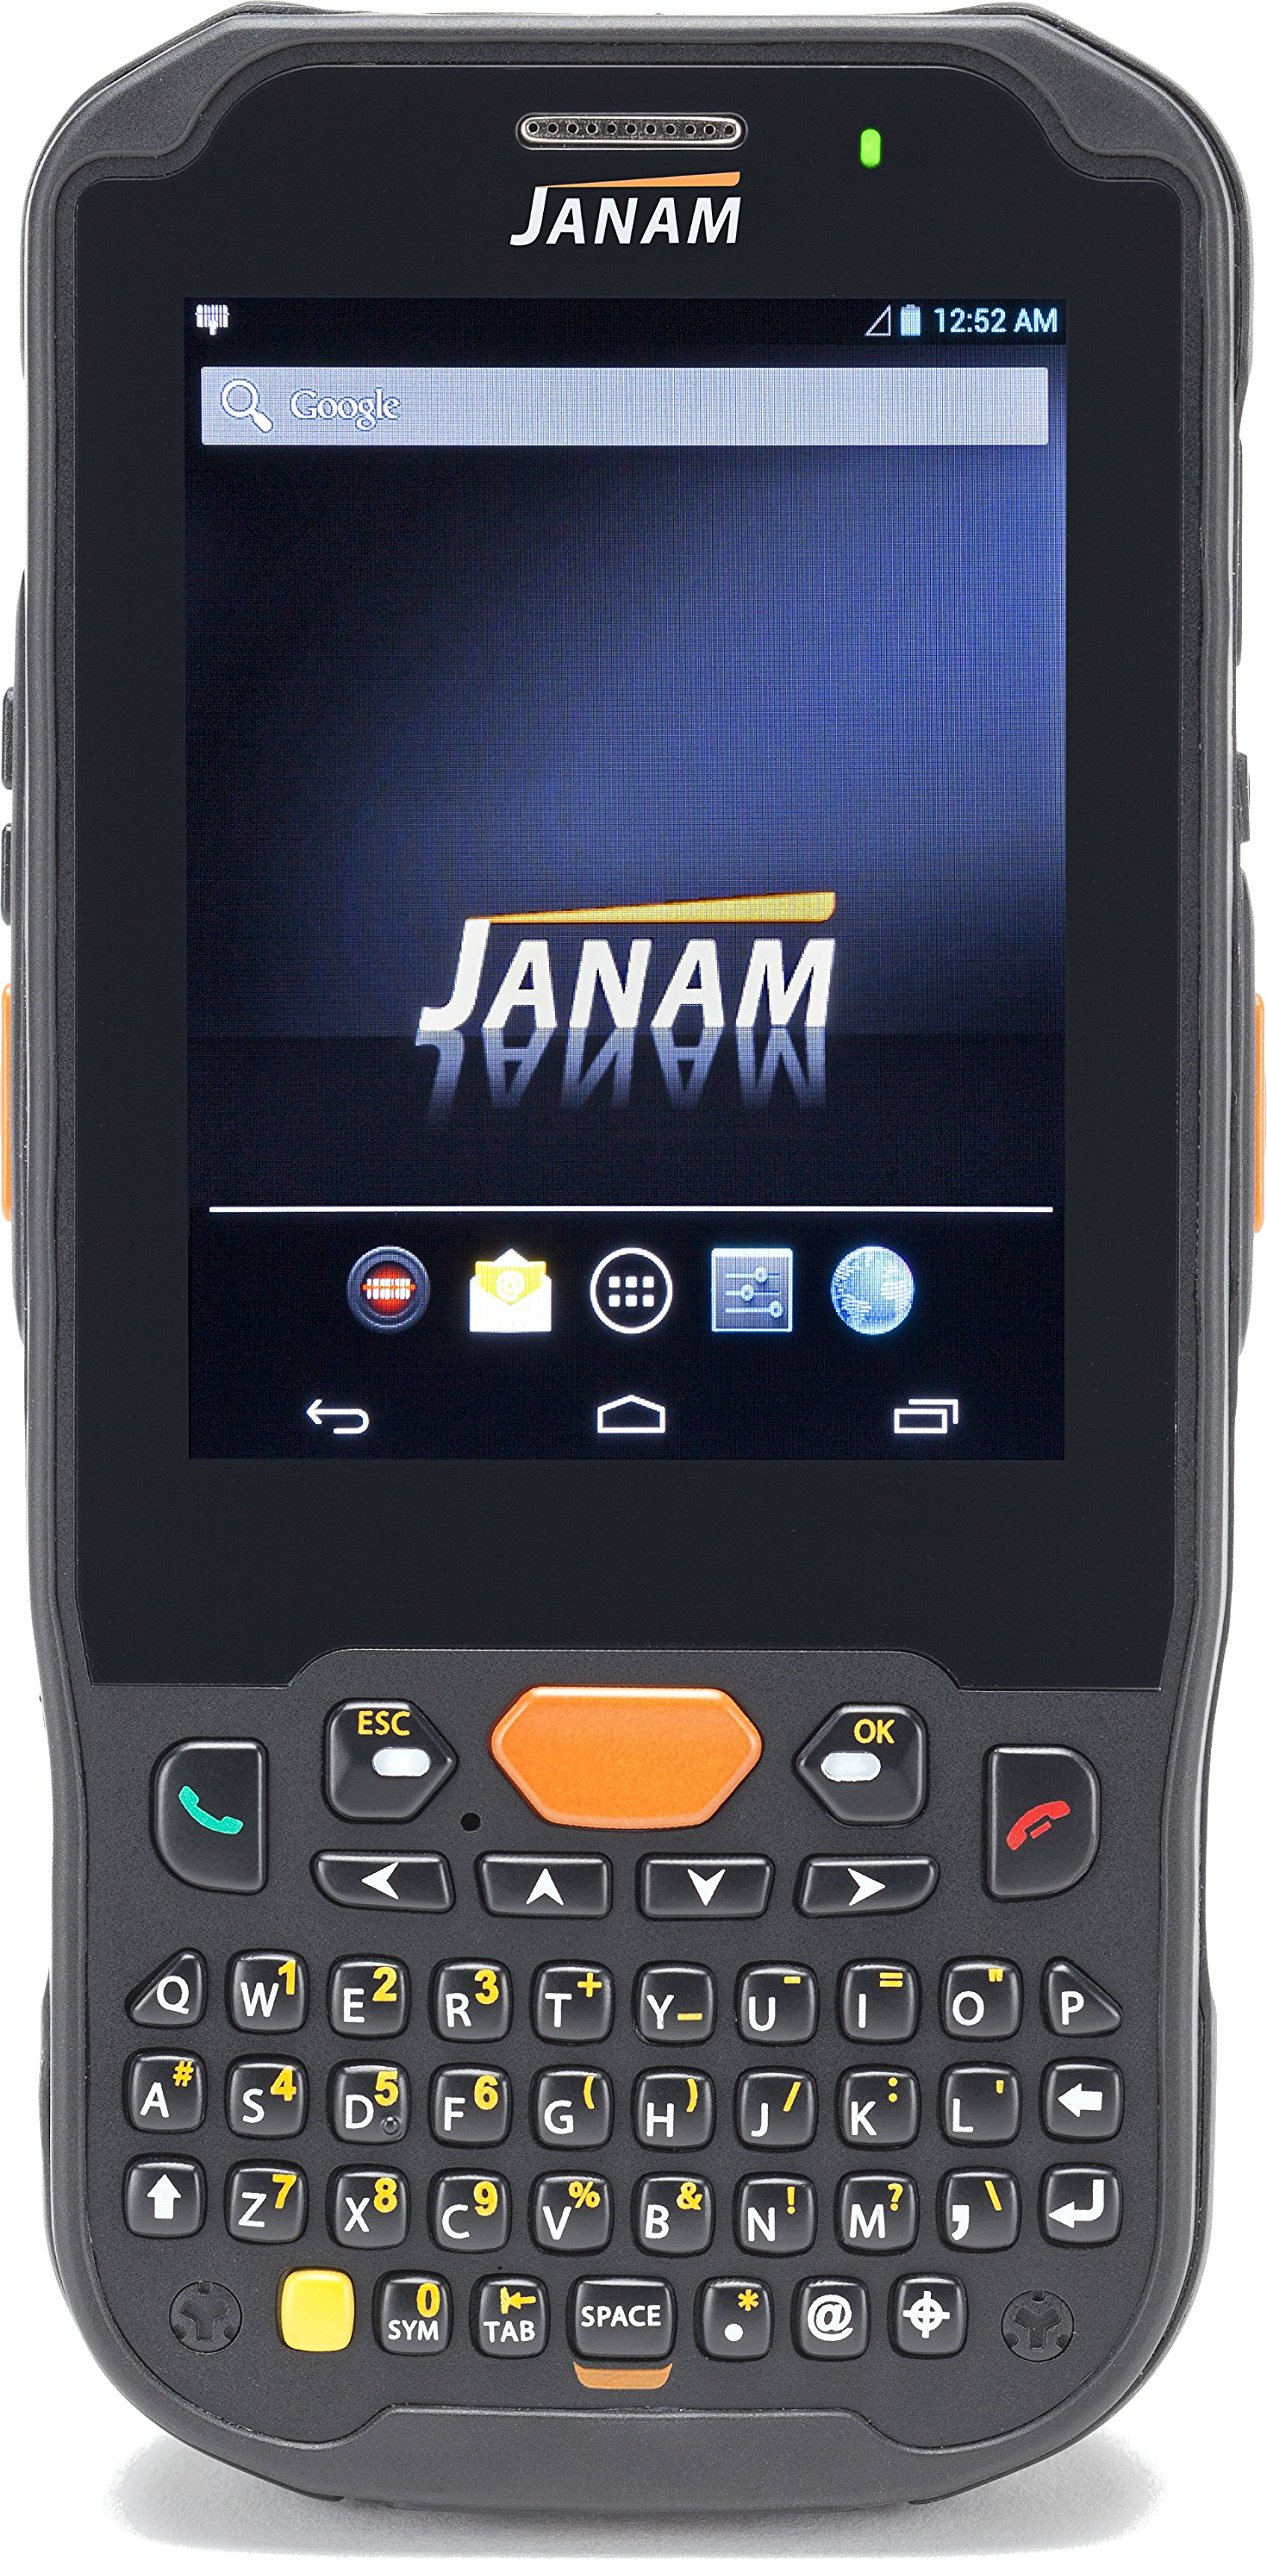 Janam XM5-ZQXANDNV00 Series XM5 Handheld Computing Devices, Android JB 4.2, 1D Laser Scanner, Bluetooth, Camera, 4000 mAh, Qwerty Keypad by JANAM